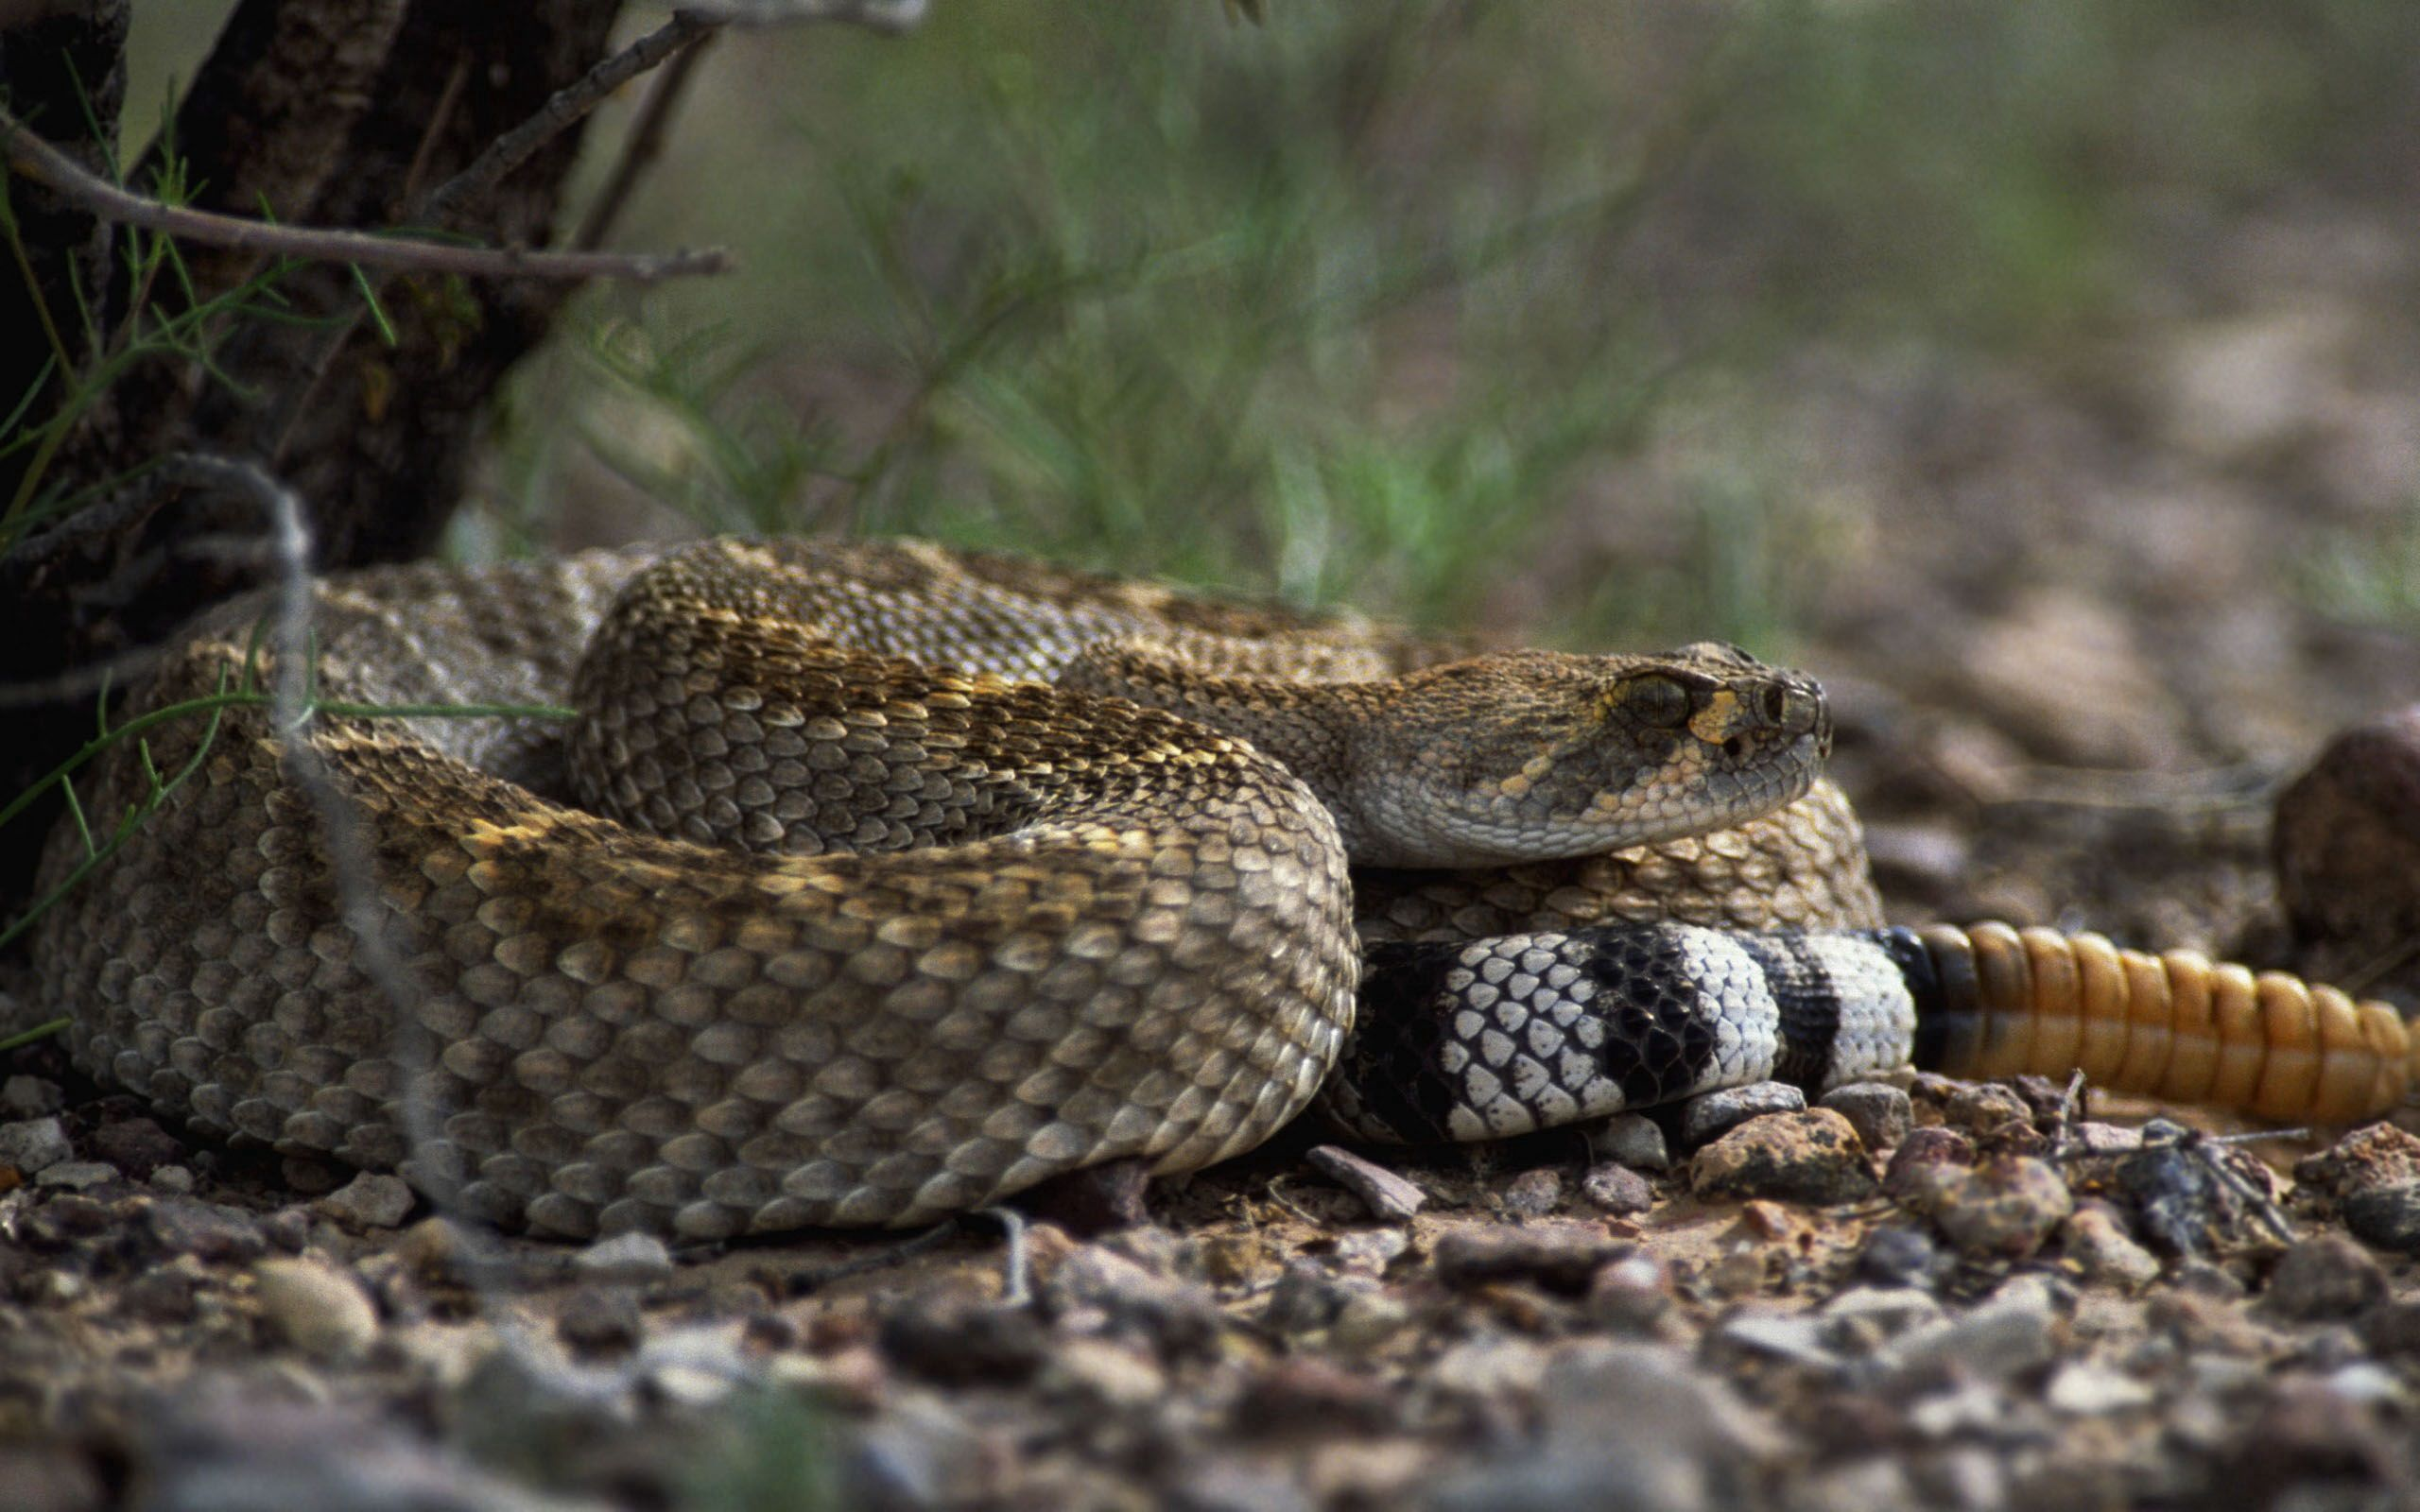 112026 download wallpaper Animals, Stones, Snake, Color, Sight, Opinion screensavers and pictures for free